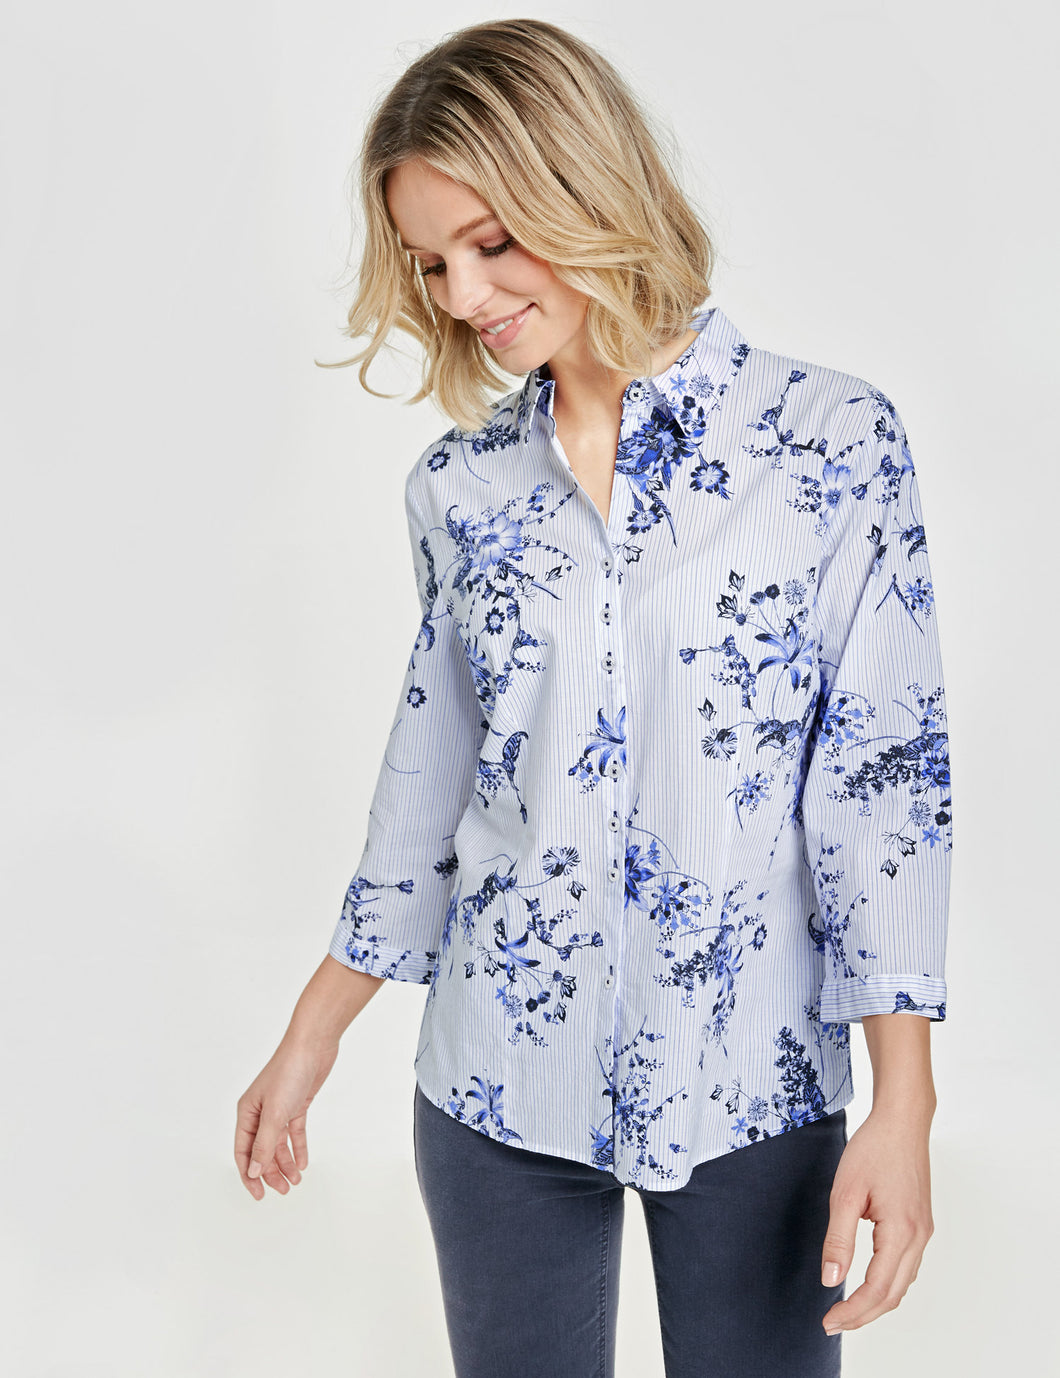 Cotton Blouse - ELIZABETH SCHINDLER